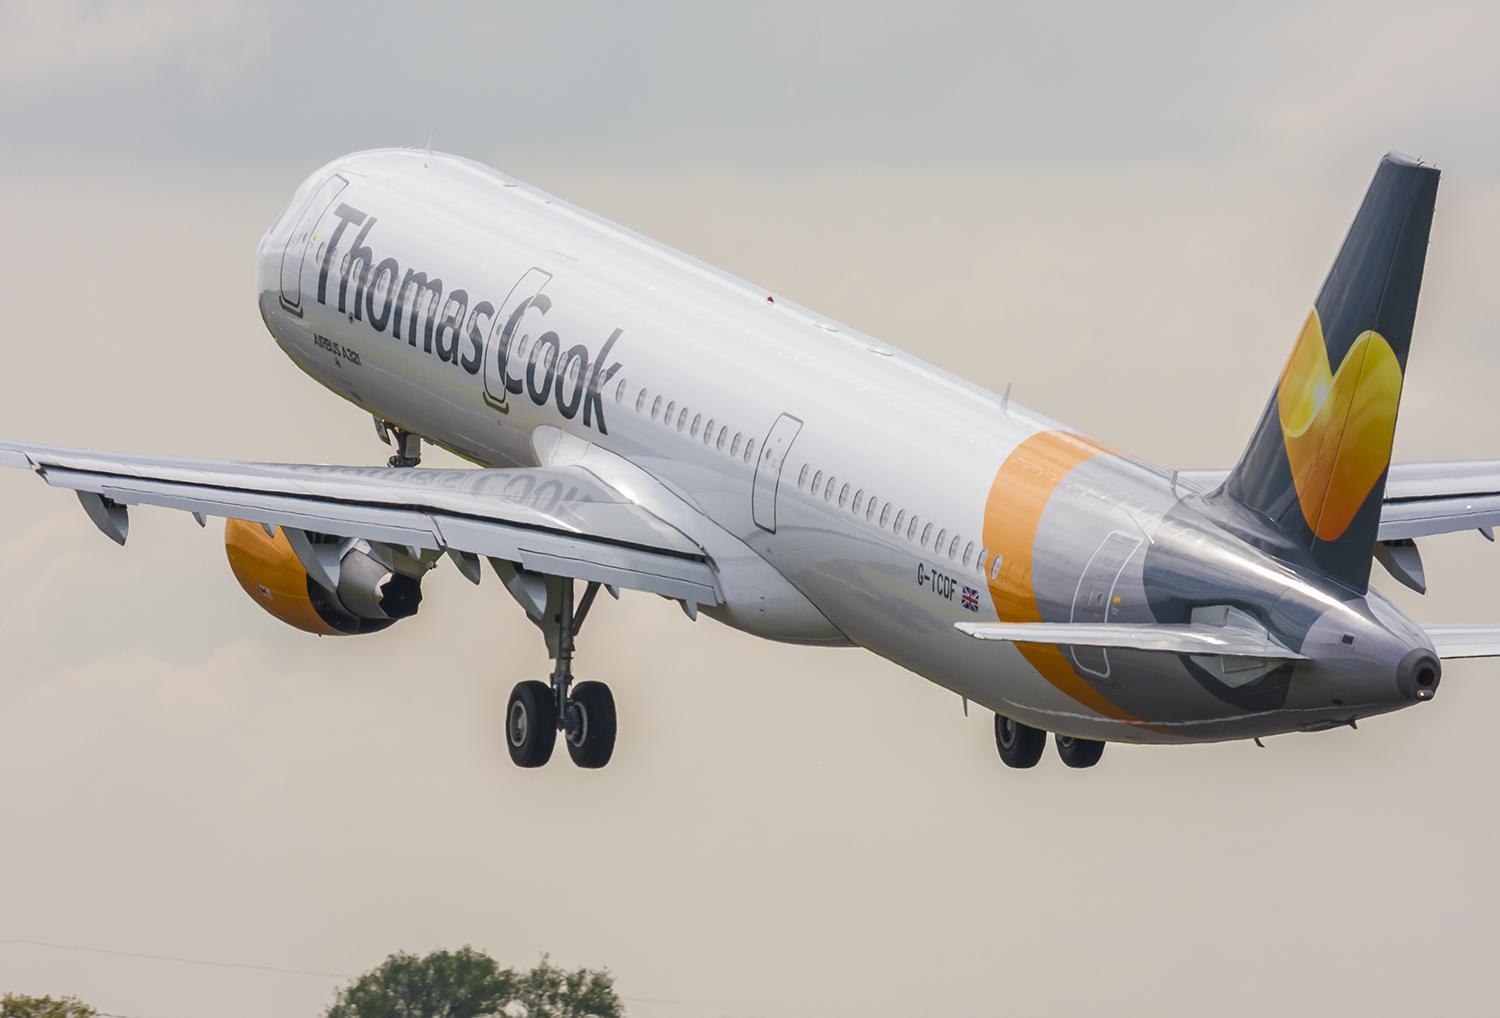 Thomas Cook adds extra aircraft to Gatwick fleet